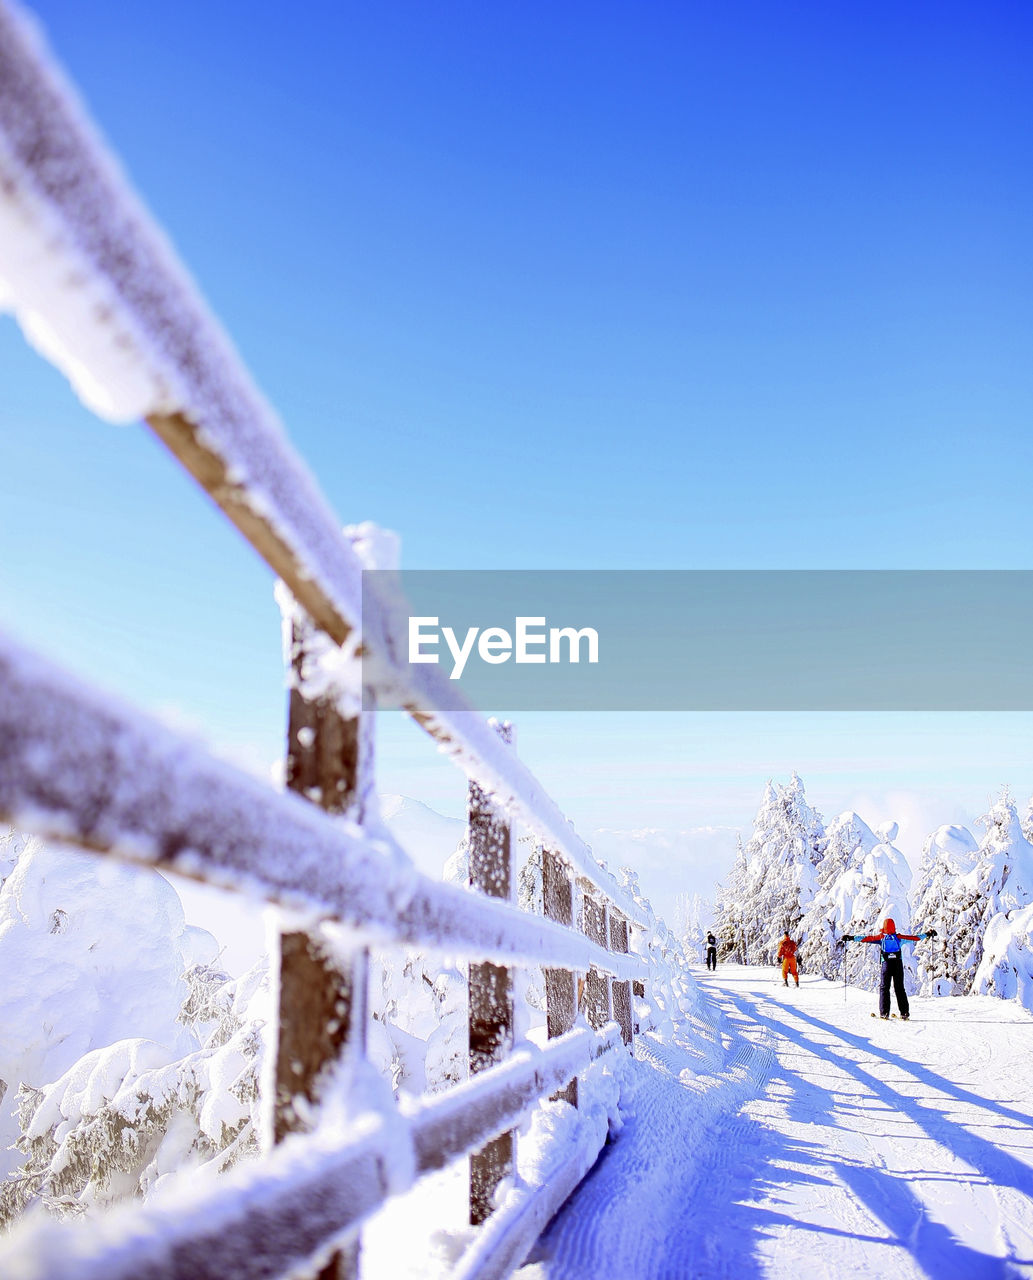 snow, winter, cold temperature, sky, covering, scenics - nature, nature, beauty in nature, sport, white color, day, clear sky, mountain, frozen, unrecognizable person, land, winter sport, leisure activity, copy space, outdoors, snowcapped mountain